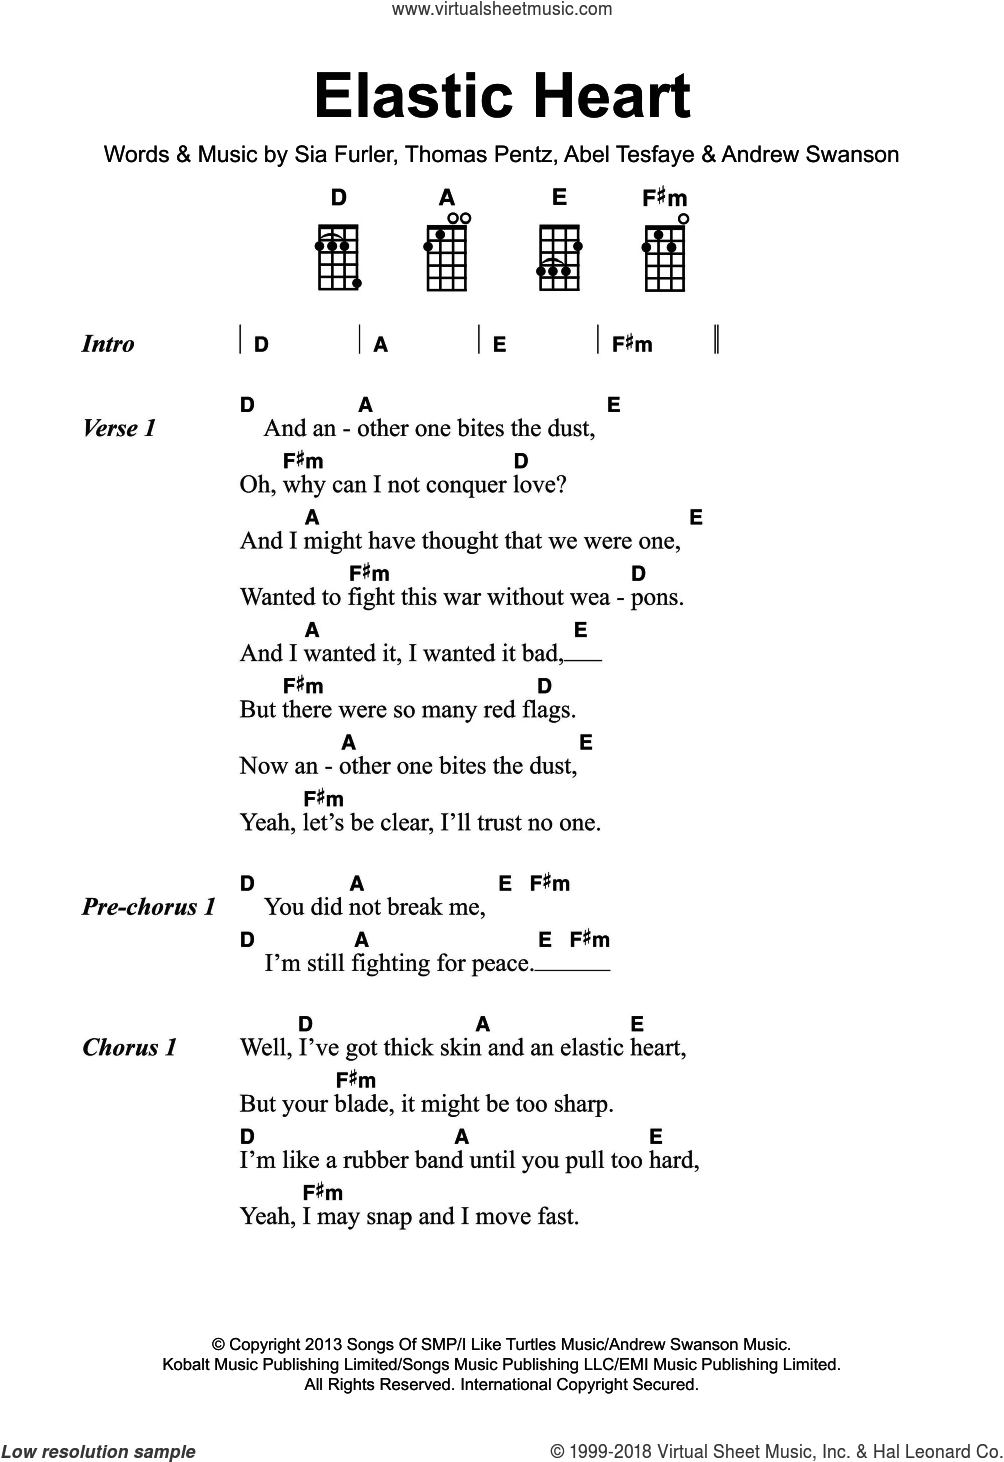 Elastic Heart sheet music for voice, piano or guitar by Sia, Abel Tesfaye, Andrew Swanson, Sia Furler and Thomas Wesley Pentz, intermediate skill level